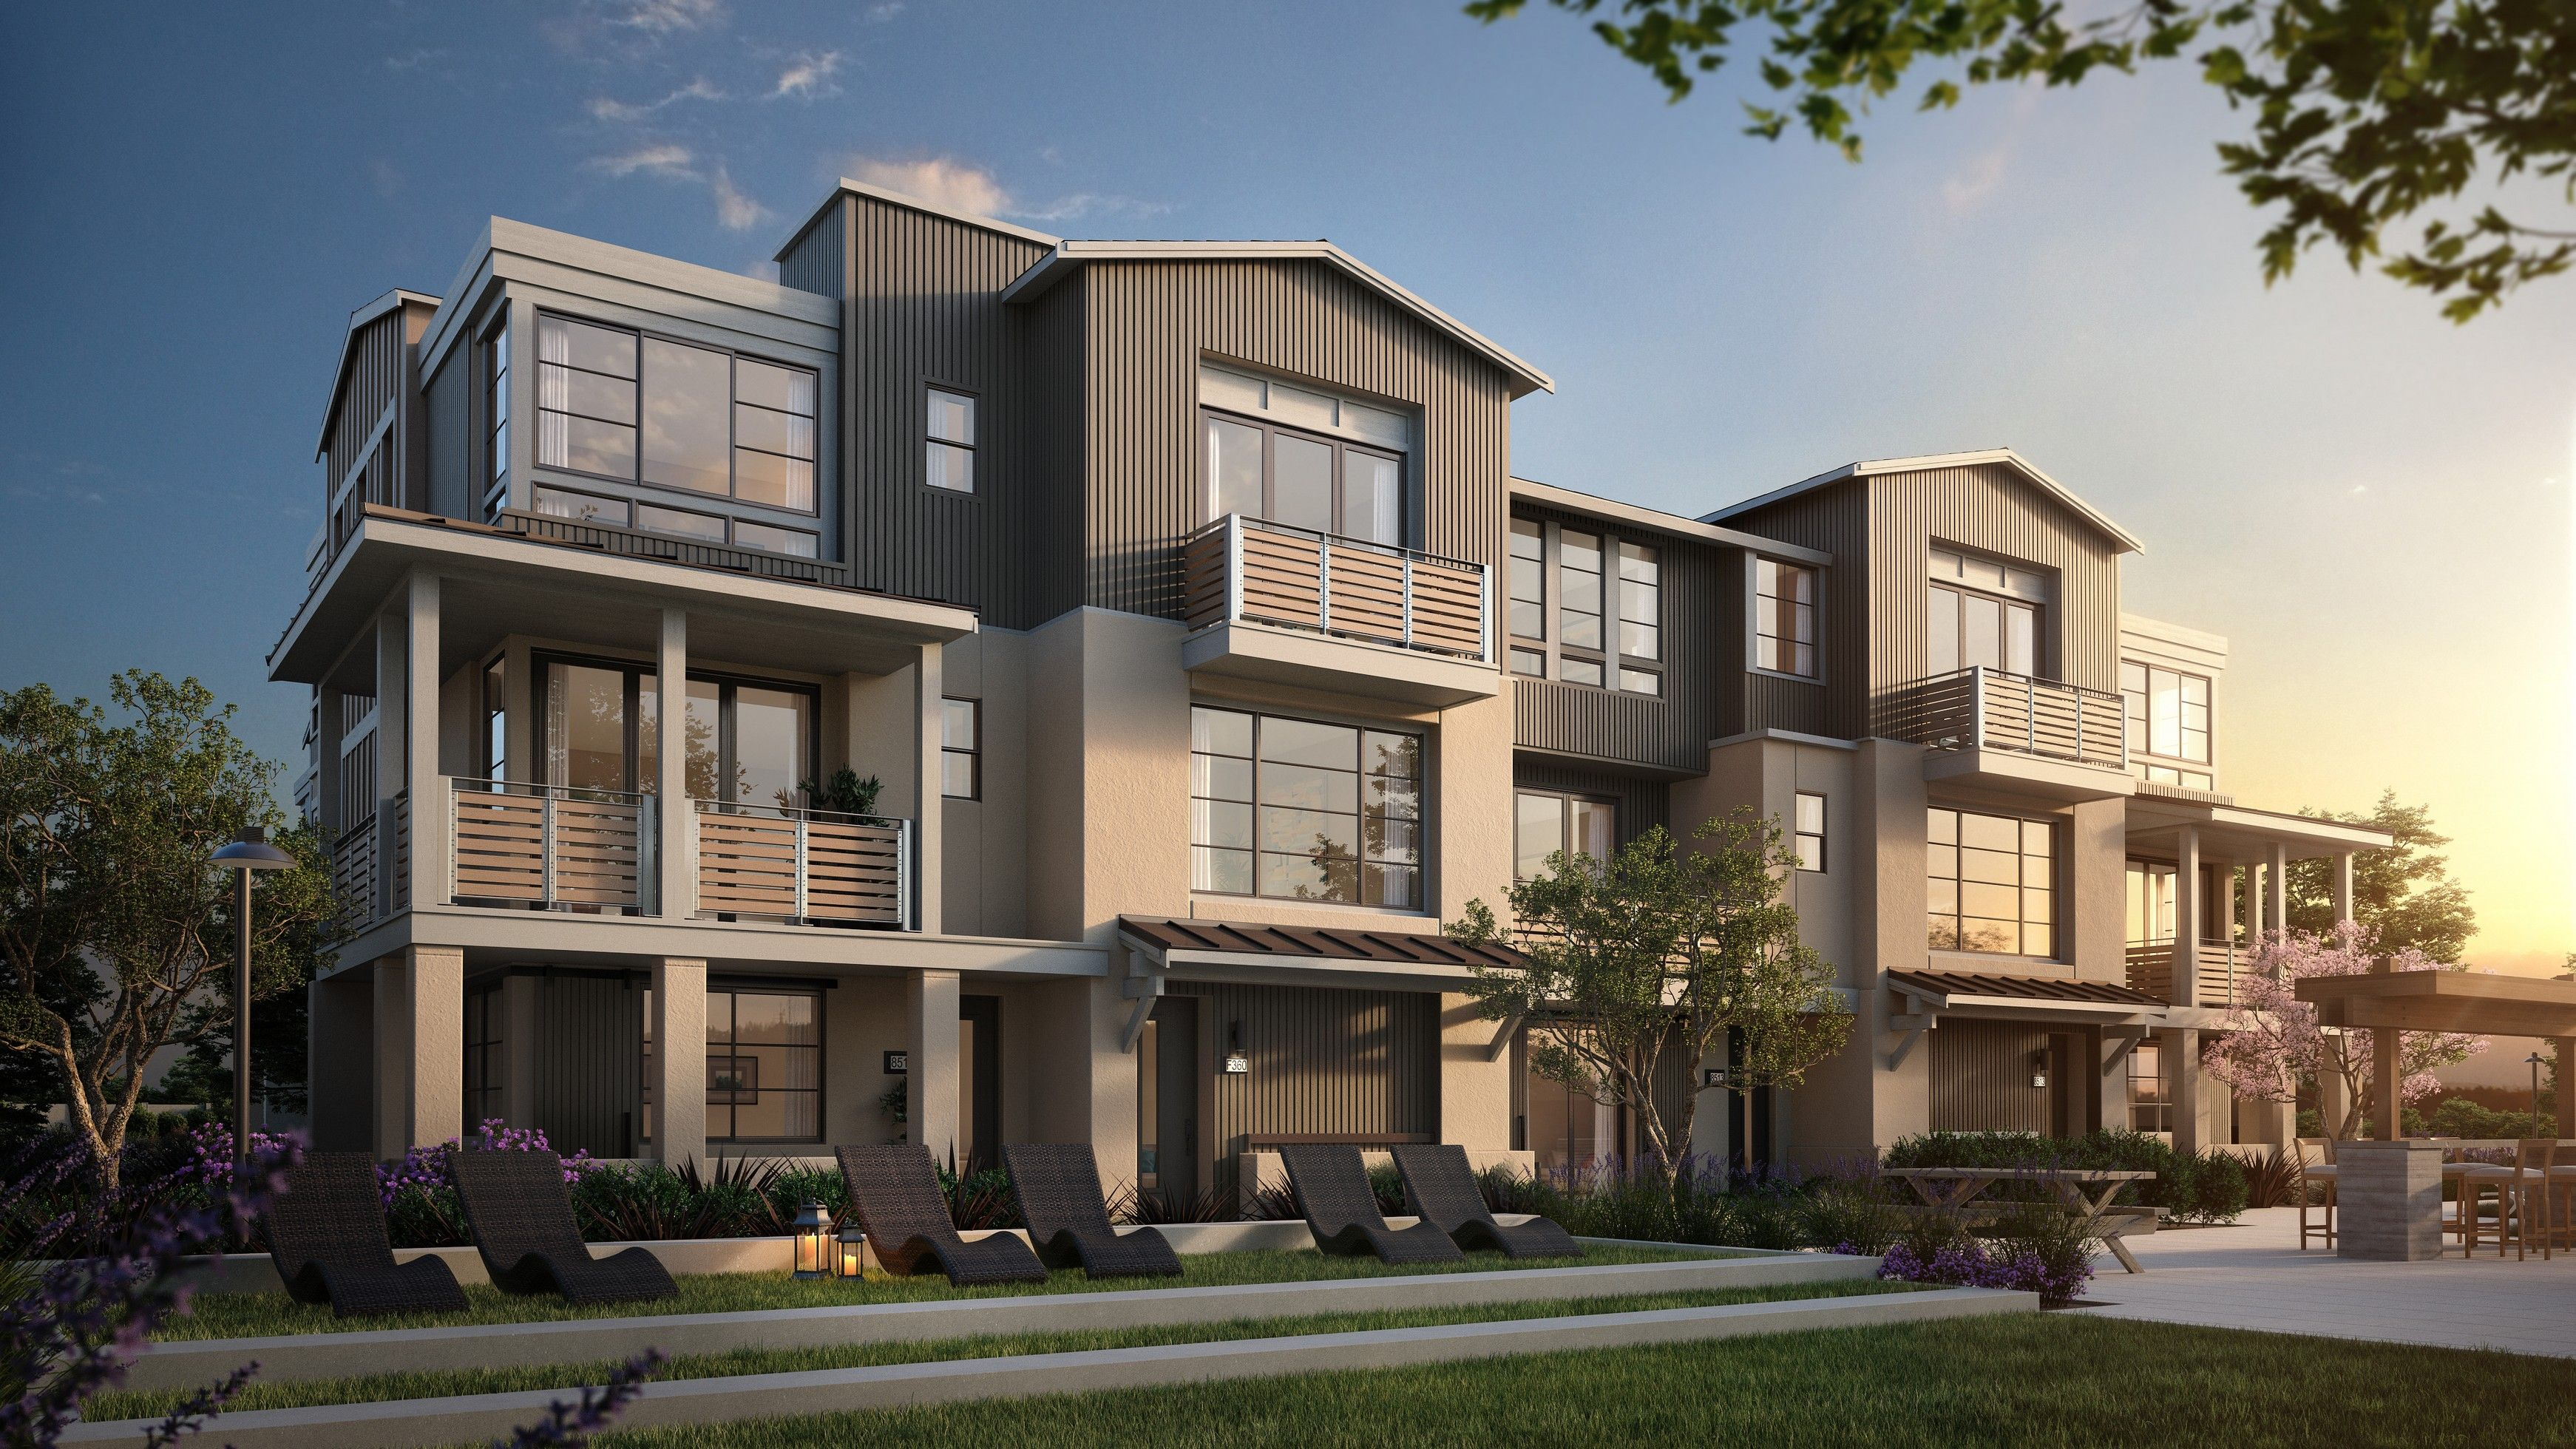 Exterior featured in The Towns- Plan 2 By SummerHill Homes in San Jose, CA